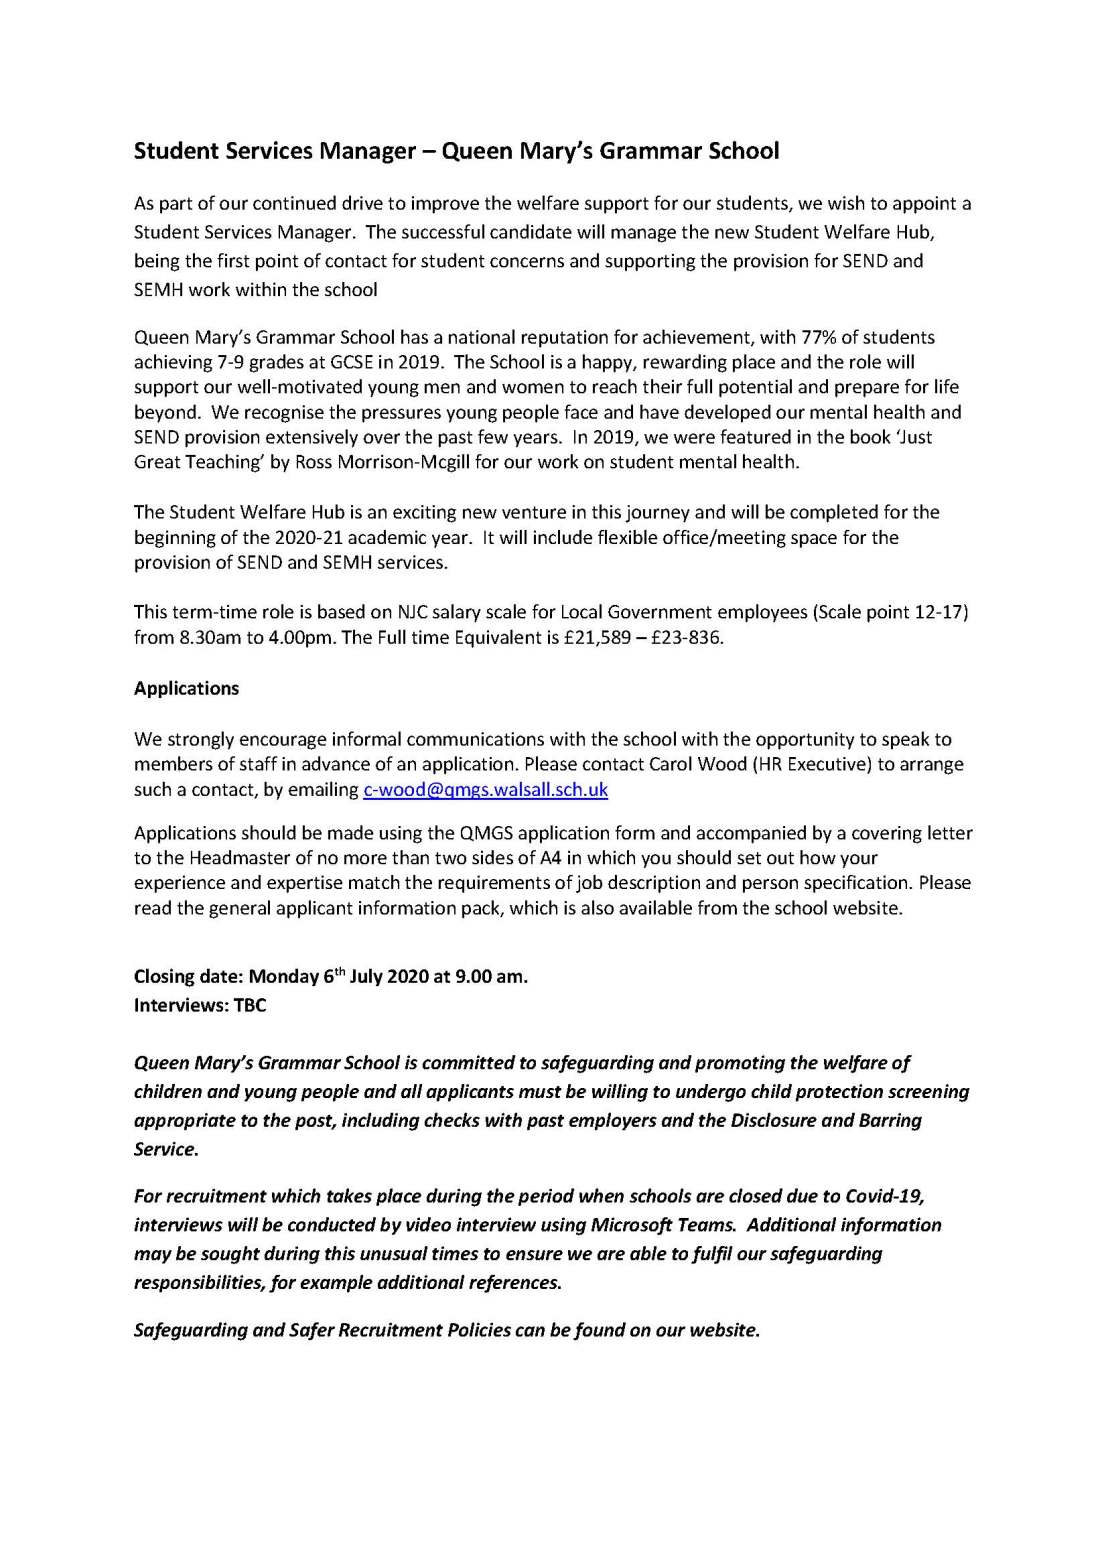 Student Services Manager QMGS Advert